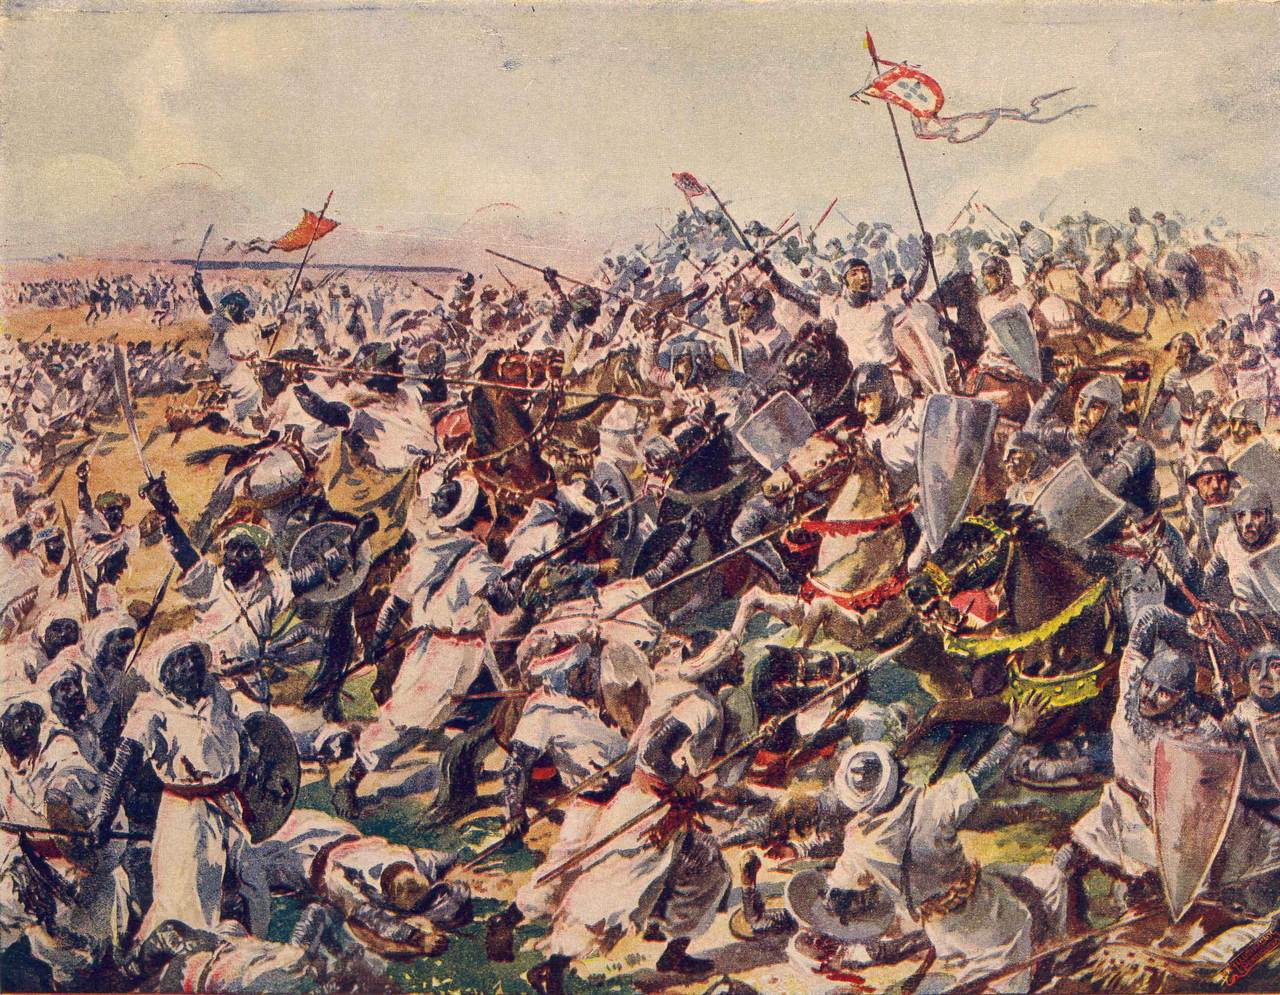 Battle of Salado, in 'Pictures of the History of Portugal', 1917, Roque Gameiro, Portugal